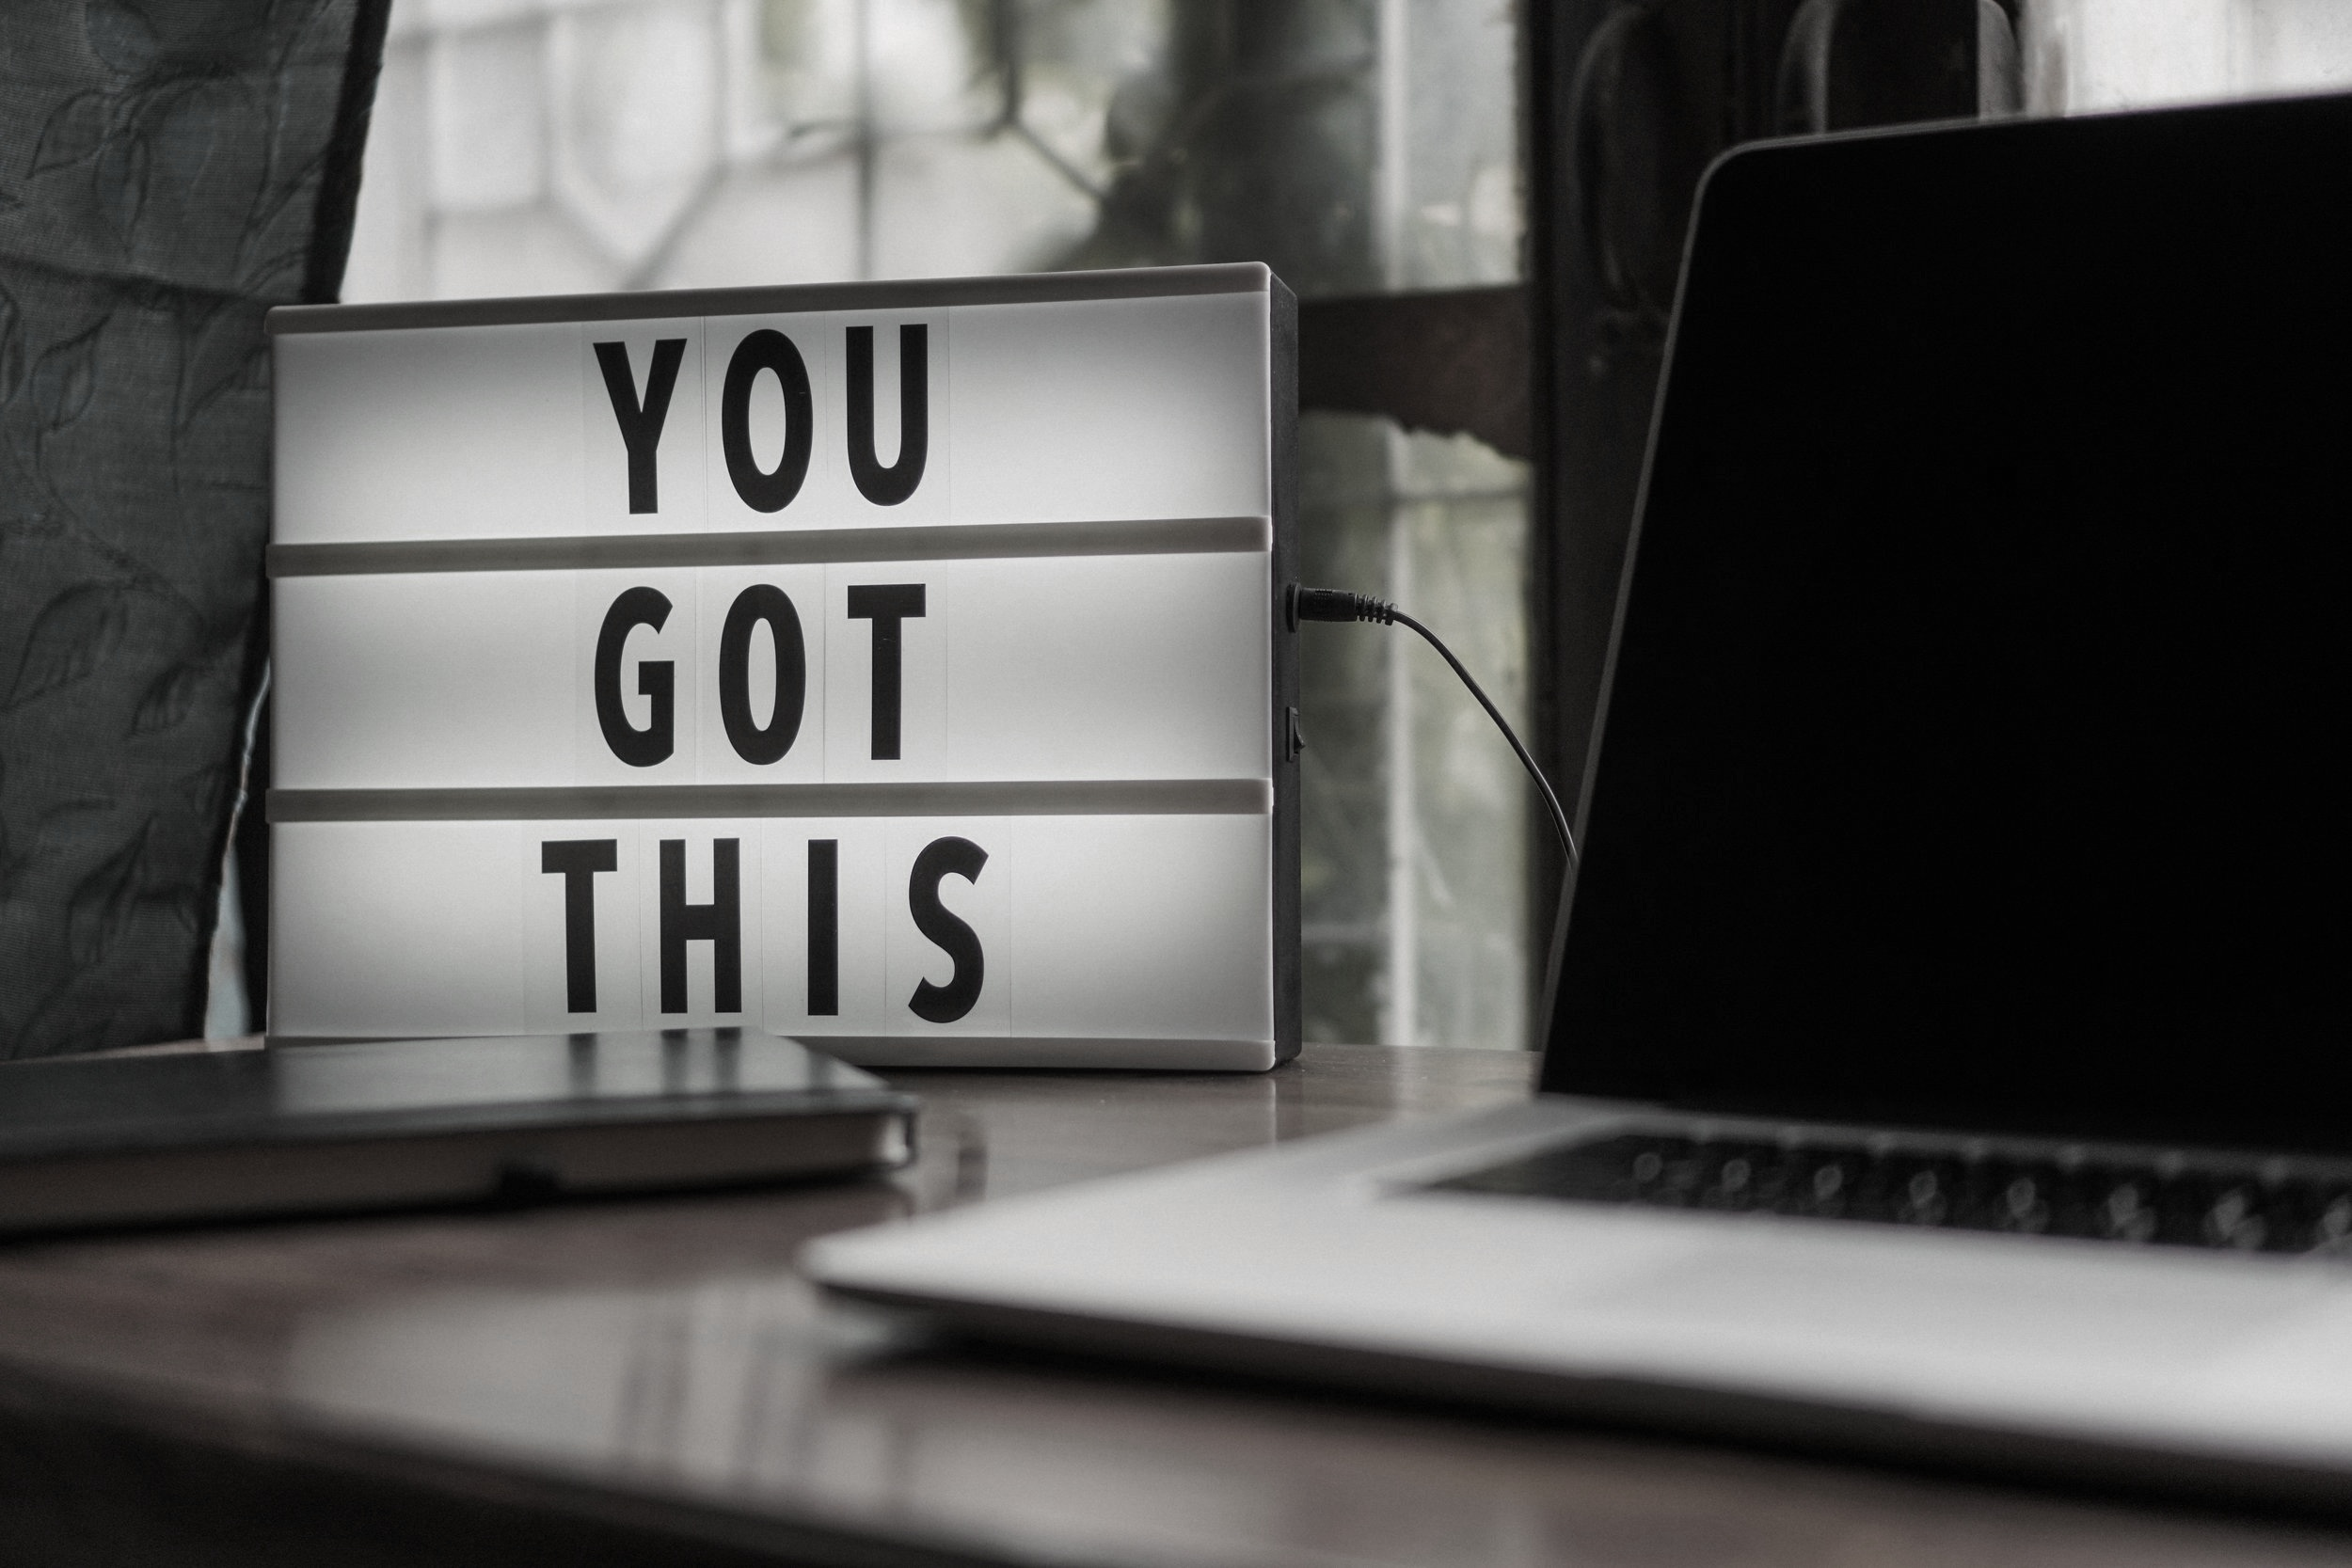 You deserve to win. You deserve to increase your sales. You deserve to grow your business. You got this!